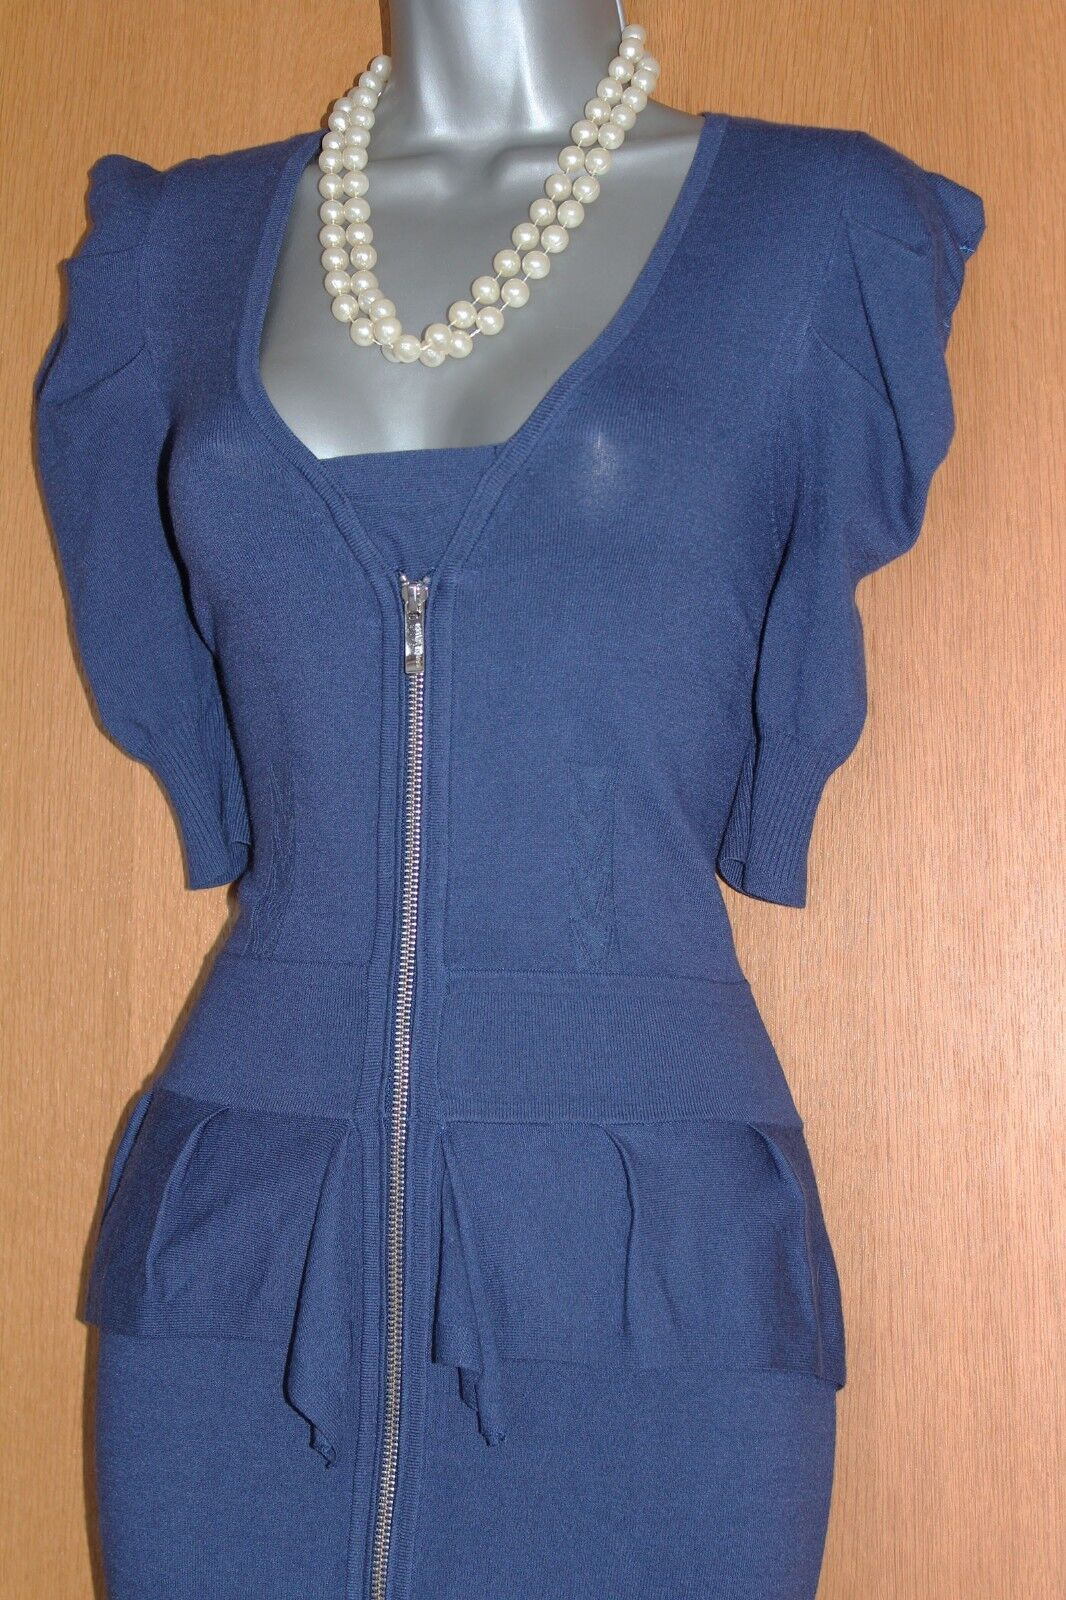 KAREN MILLEN bluee Thin Knitted Short Short Short Sleeves Front Zip Casual Work Dress 3 UK12 0d06d7